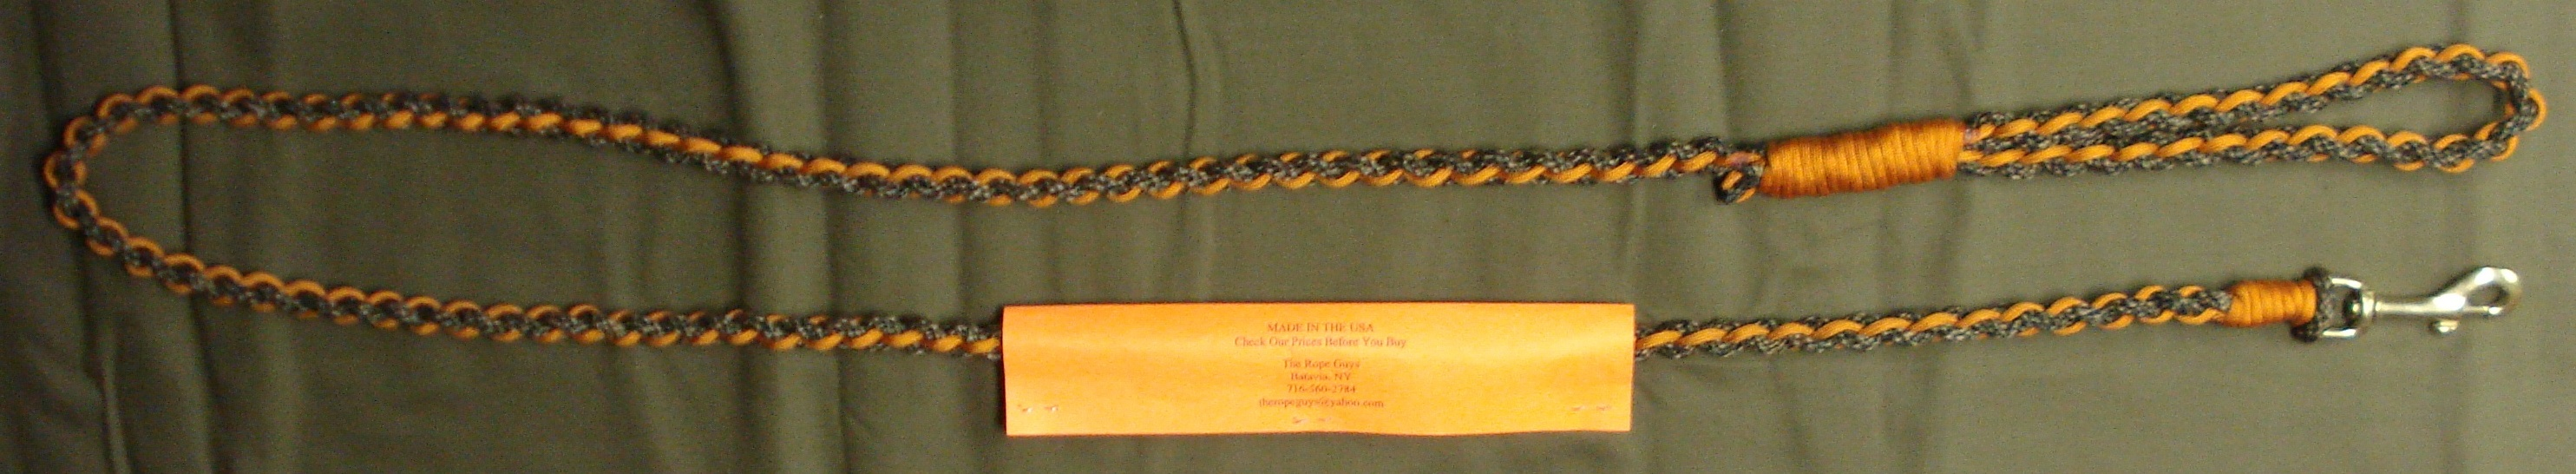 Camo Braided Lead With Rust Orange